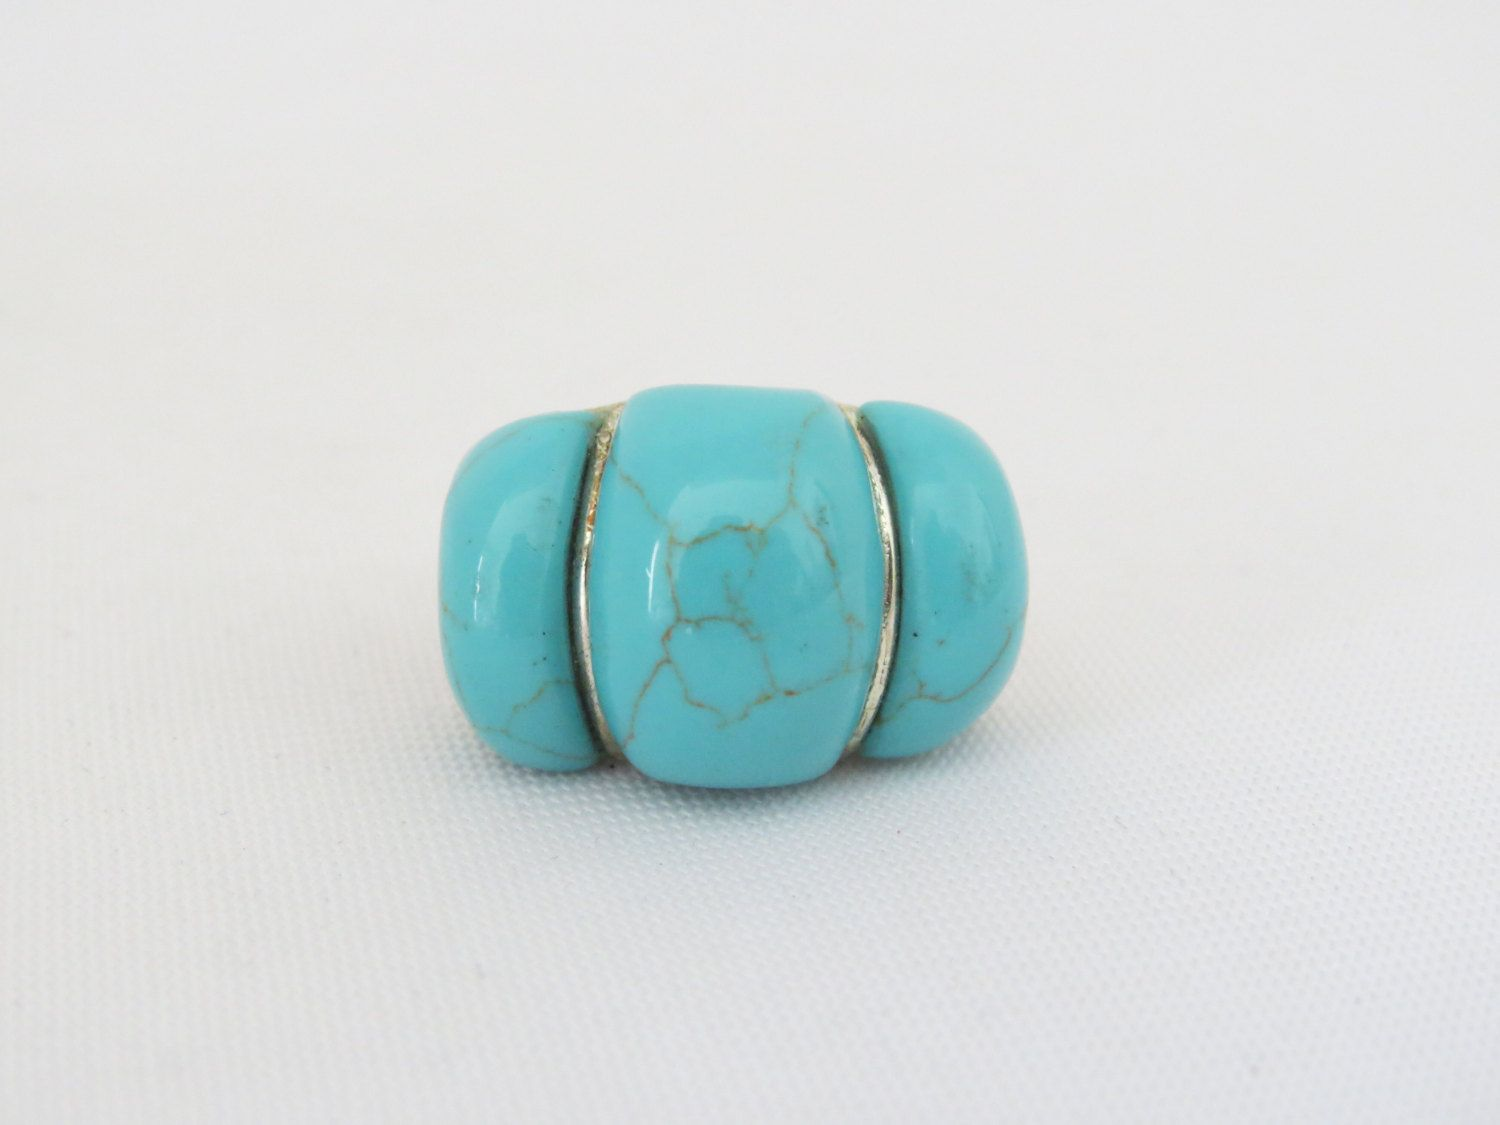 Vintage Sterling Silver Turquoise Bold Dome Ring Size 8 by wandajewelry2013 on Etsy